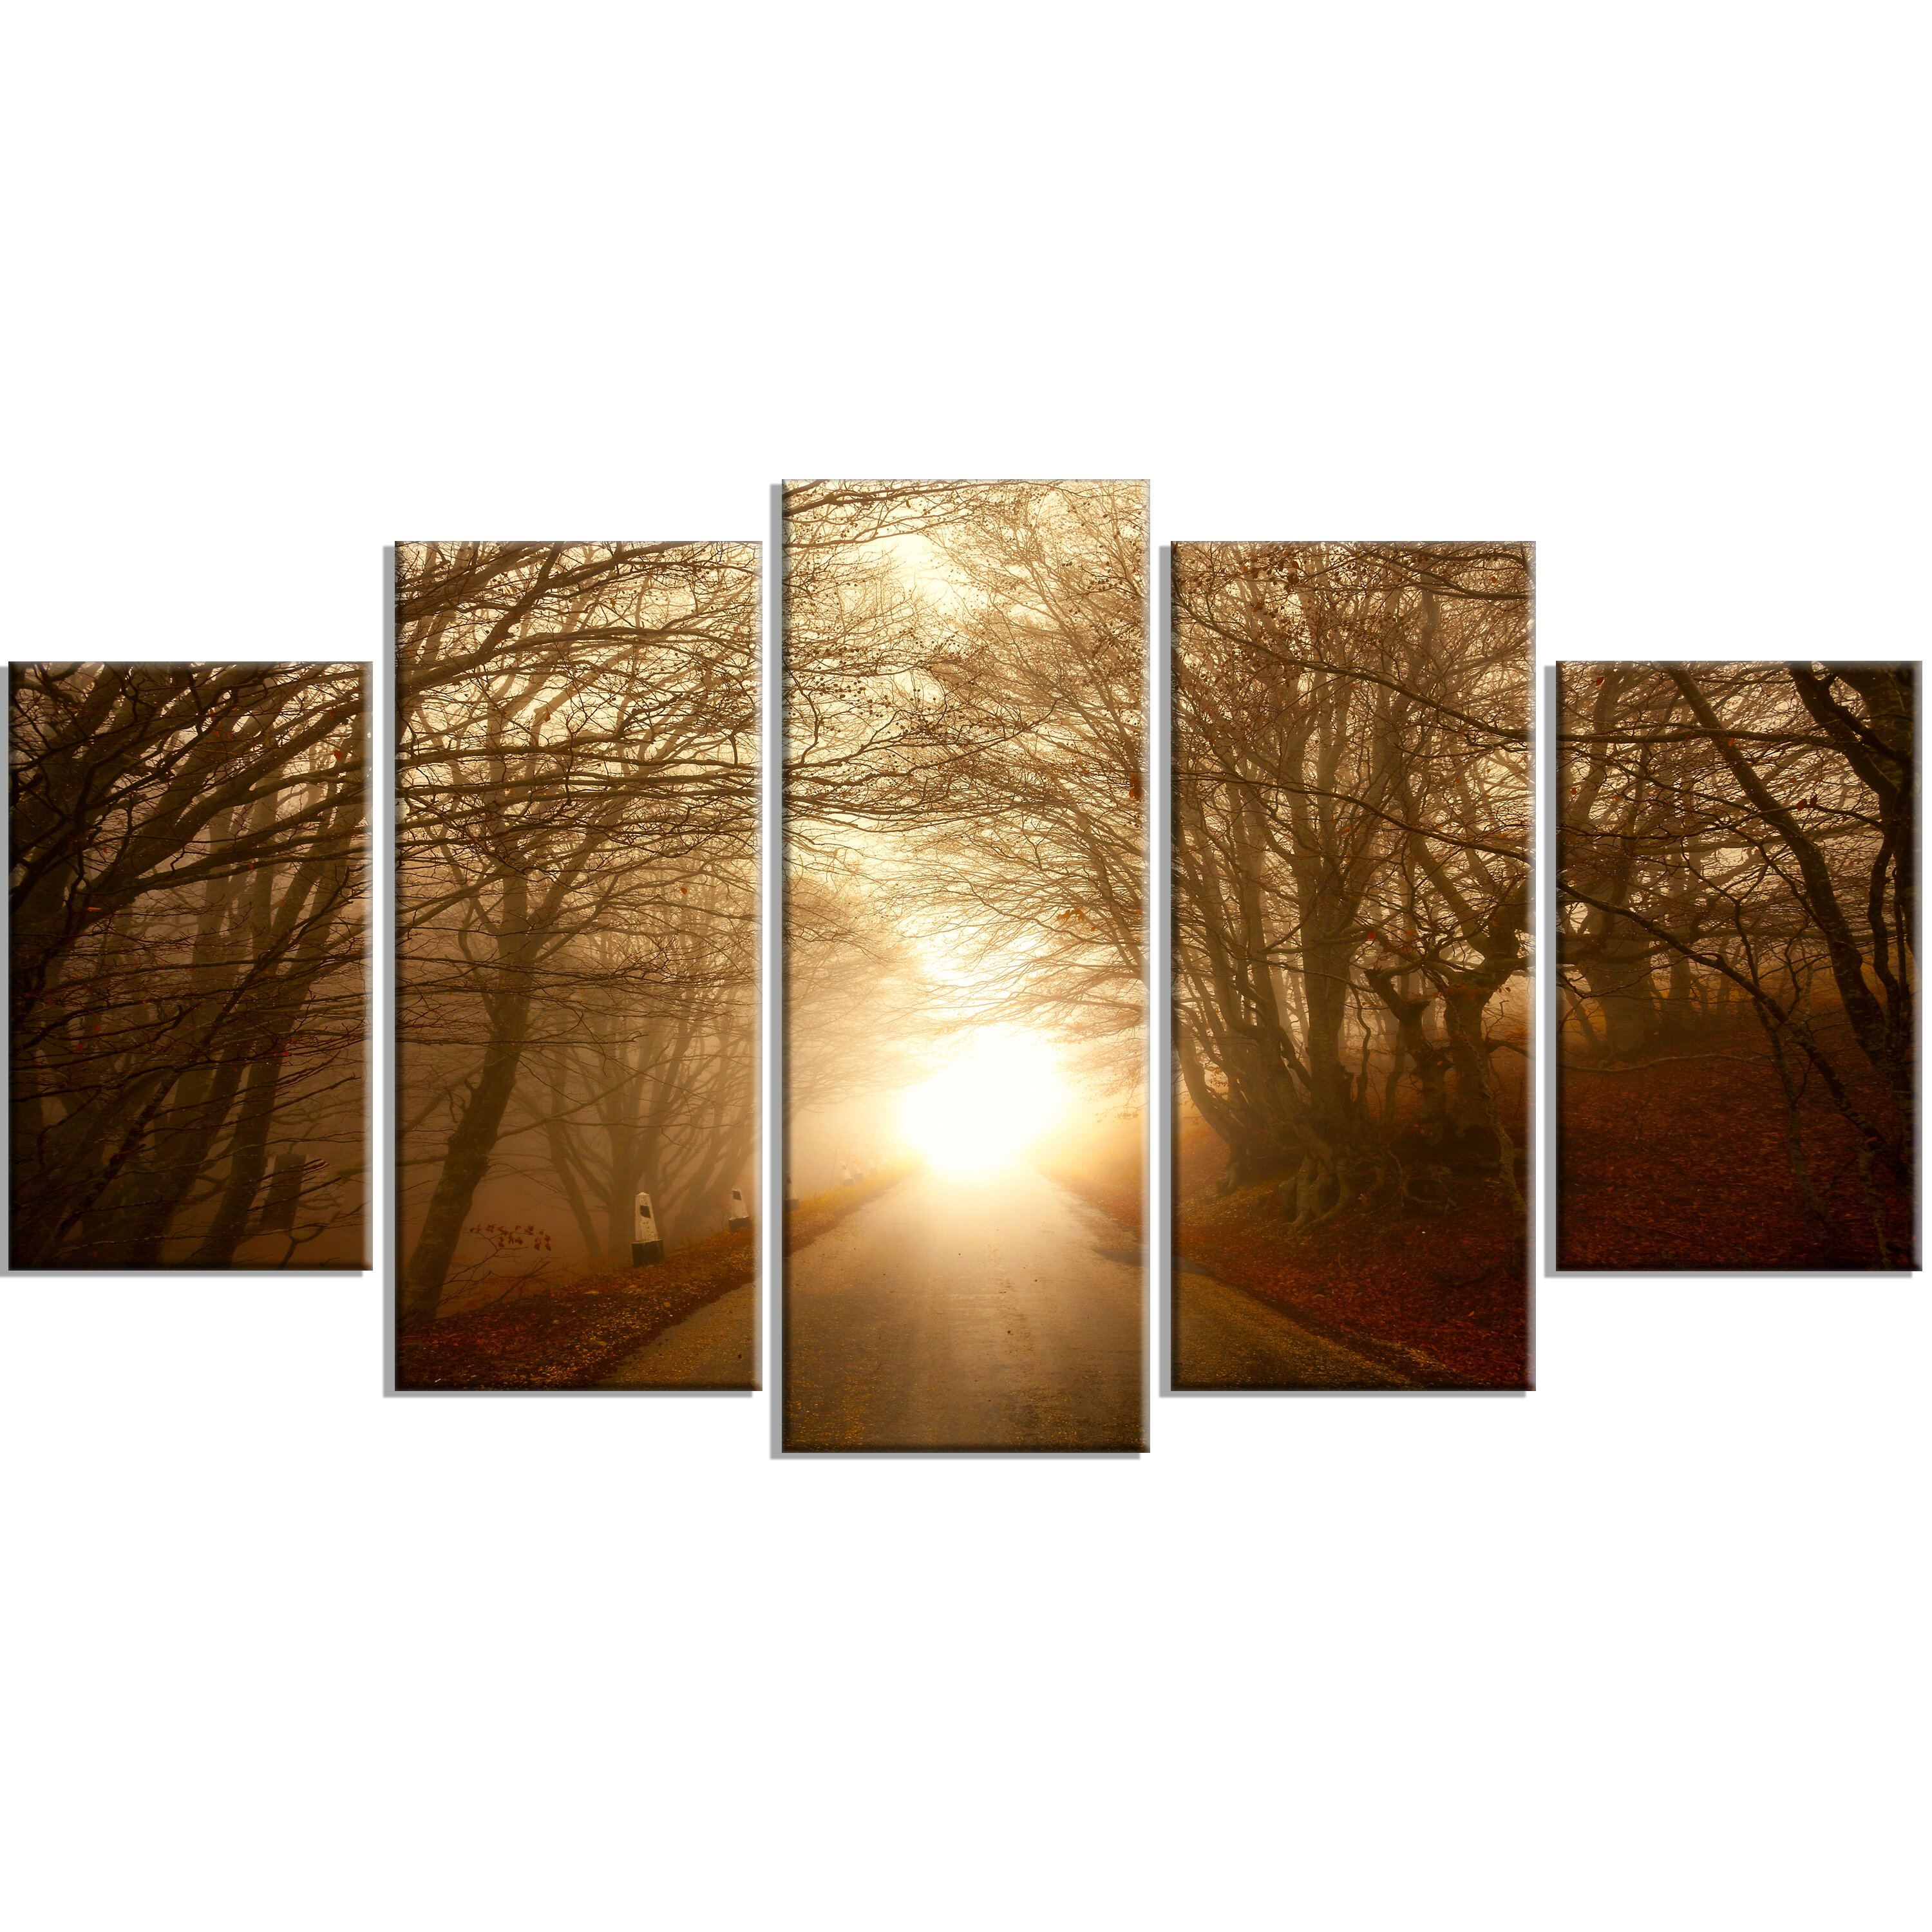 Designart Path To Sunlight In Autumn Forest 5 Piece Wall Art On Wrapped Canvas Set Wayfair